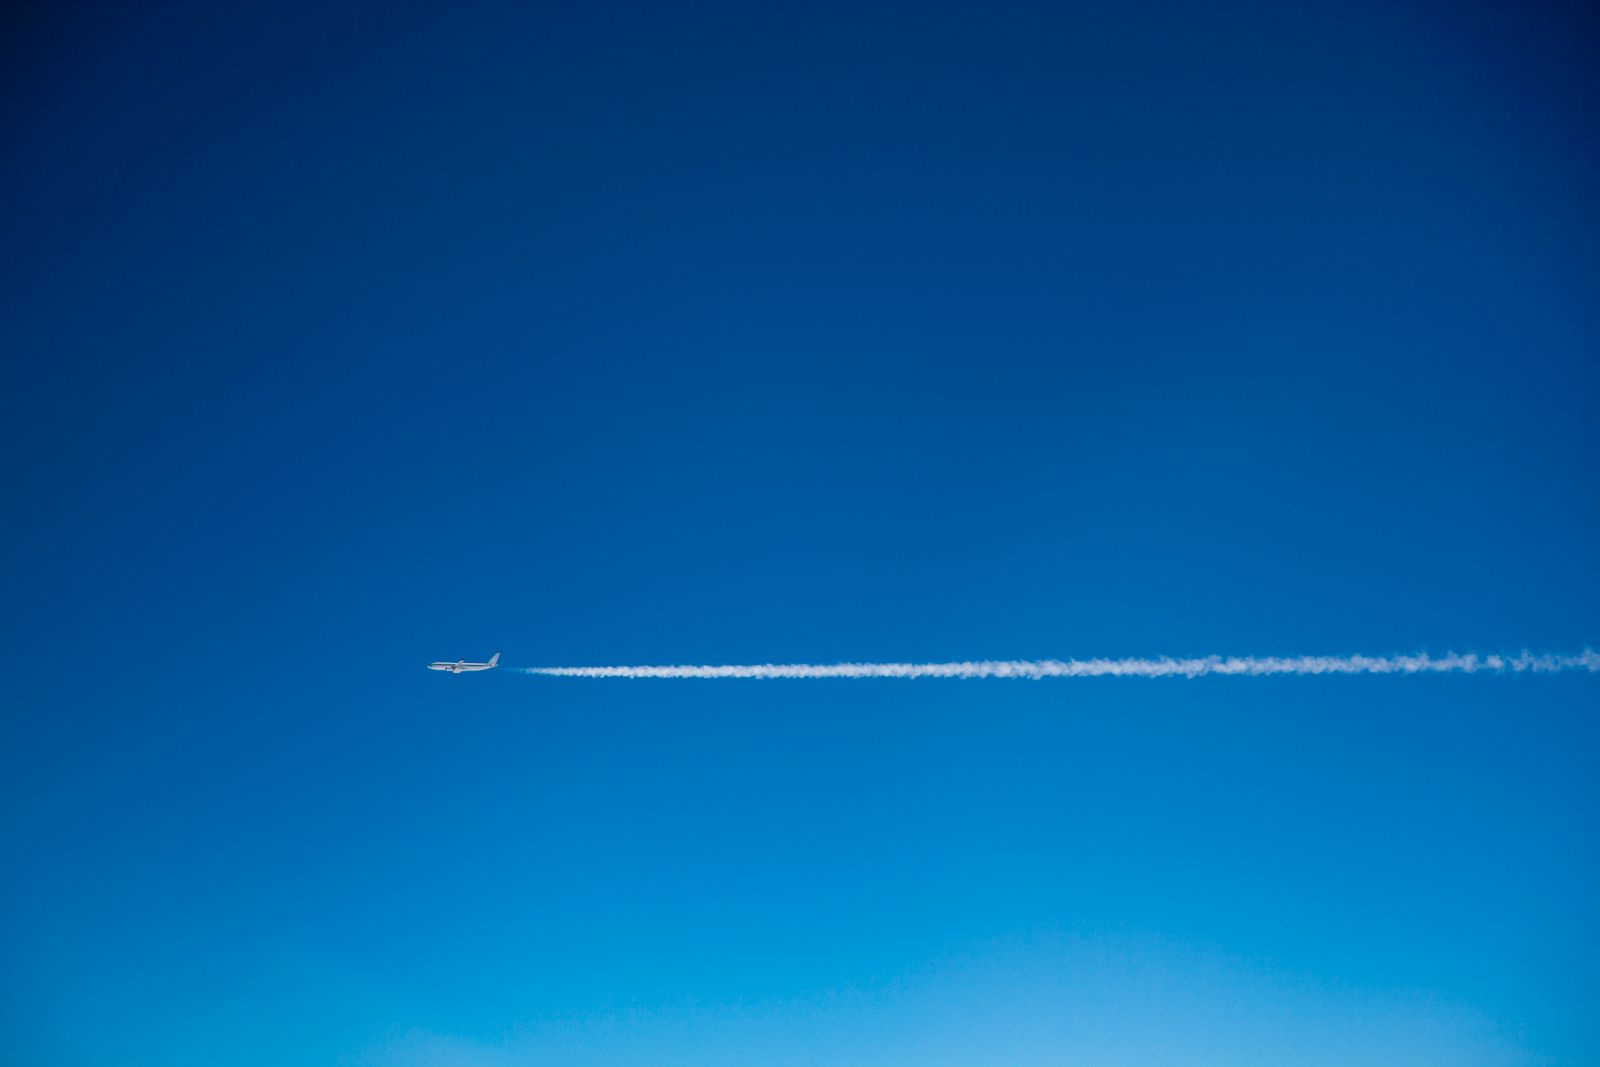 A plane and vapor trails in the sky